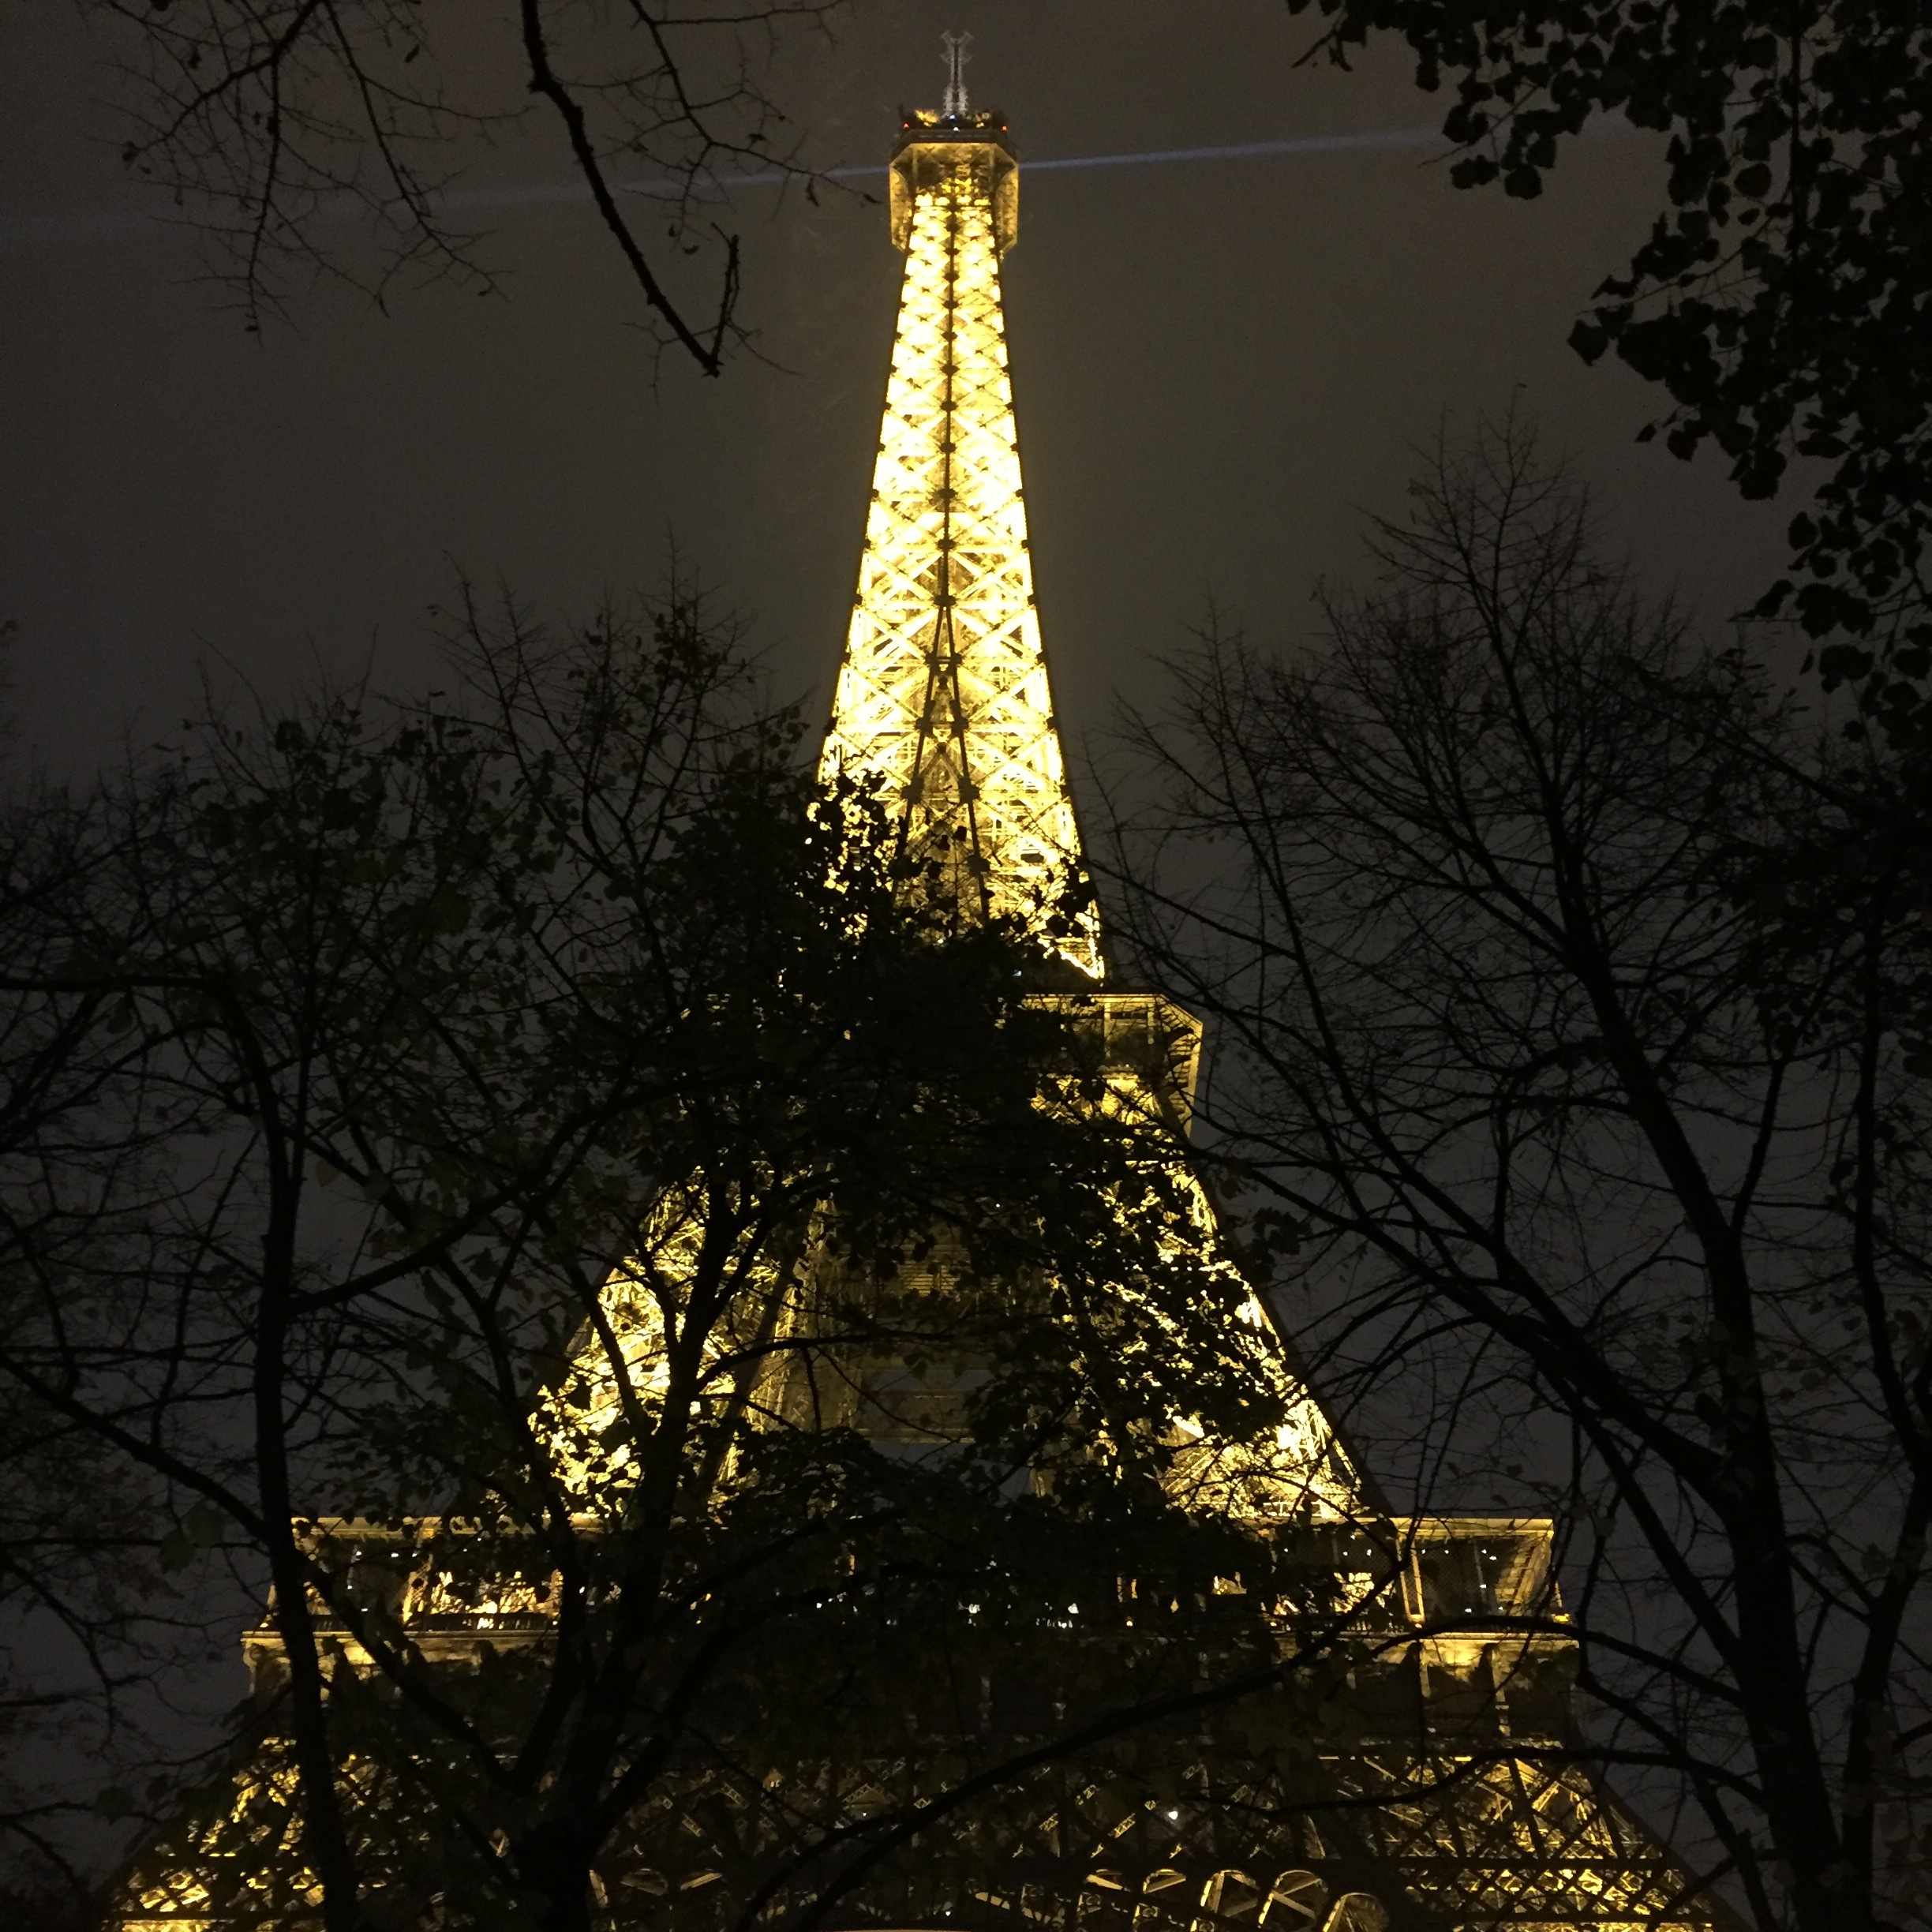 I love this picture because I like the dark silhouettes of the trees infront of the golden Eiffel Tower.